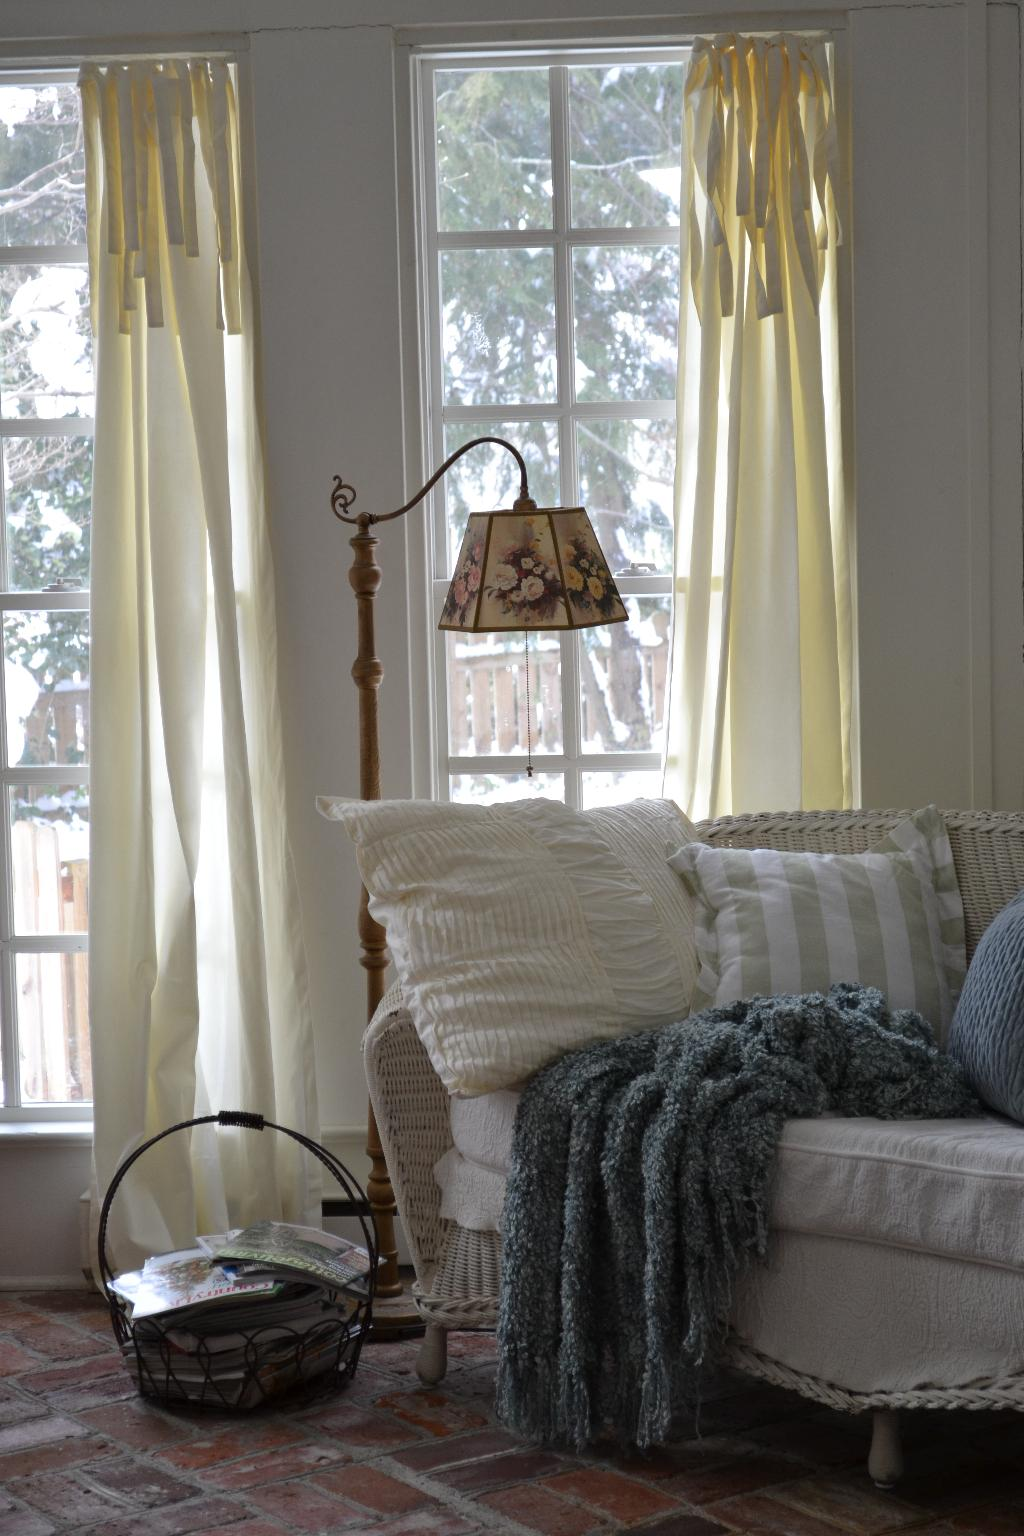 Cottage Fix - snow in the garden, wicker, pile of pillows and a blue blanket